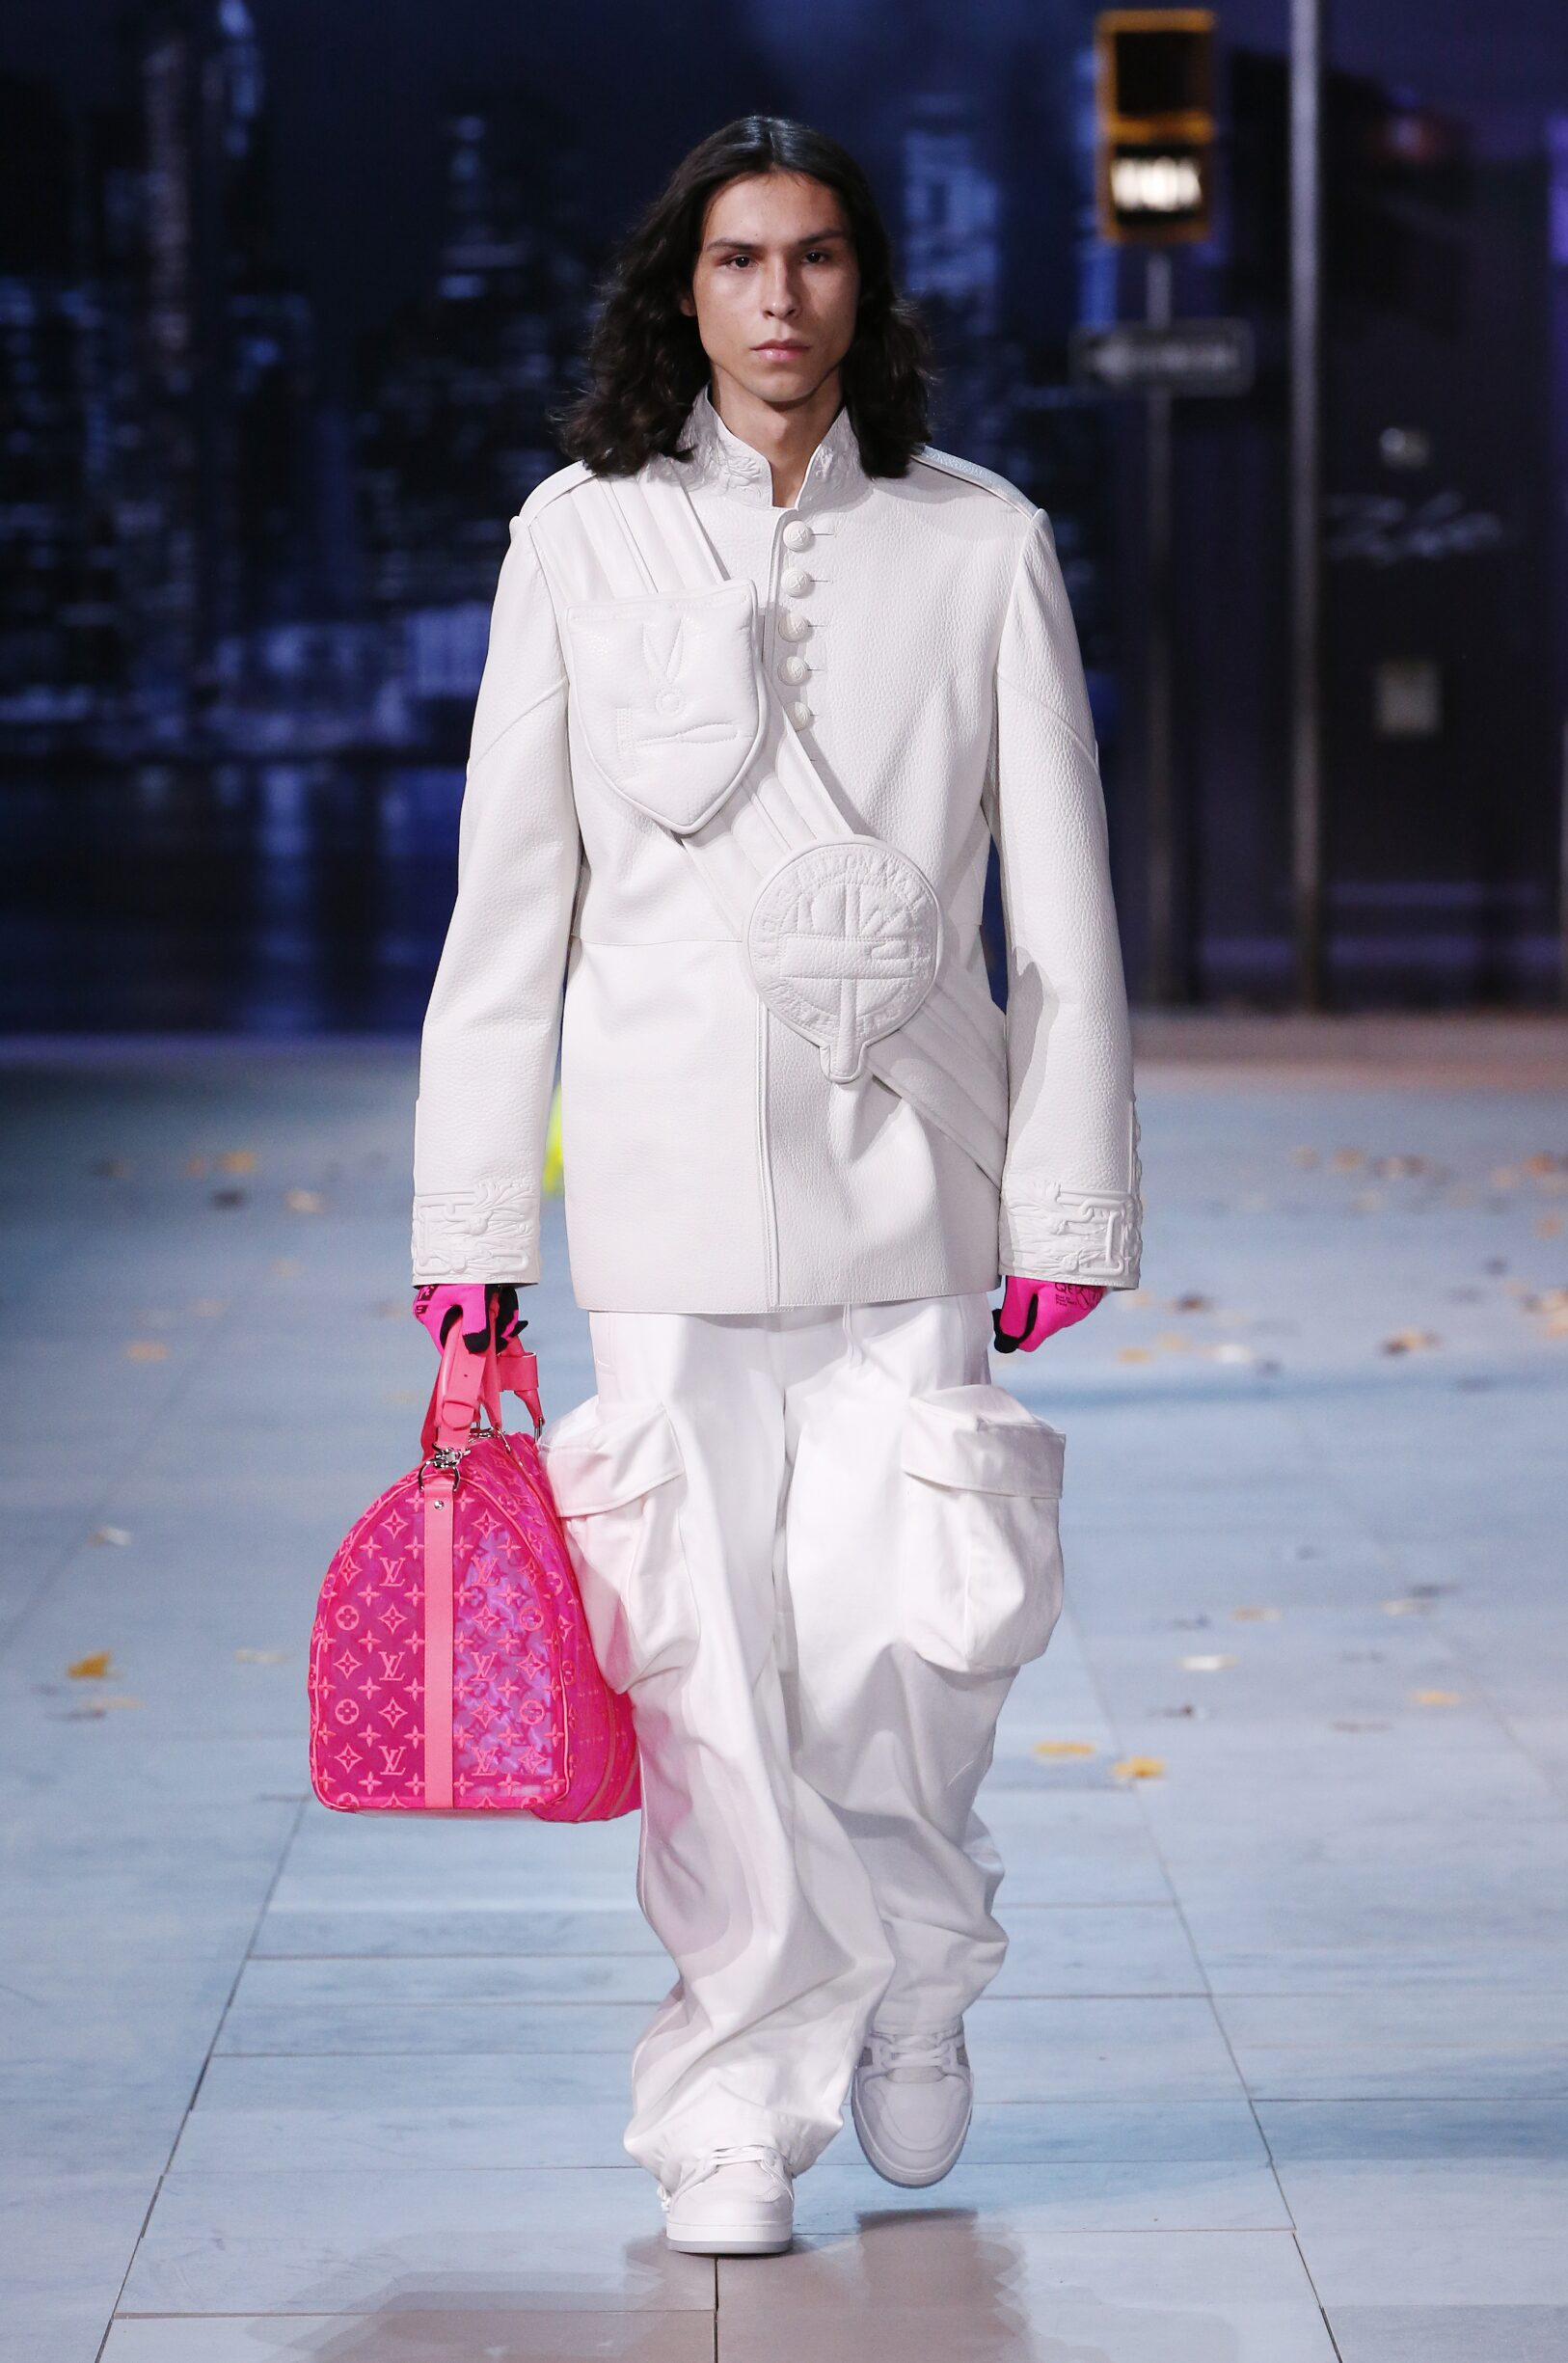 2019 Louis Vuitton Fall Catwalk